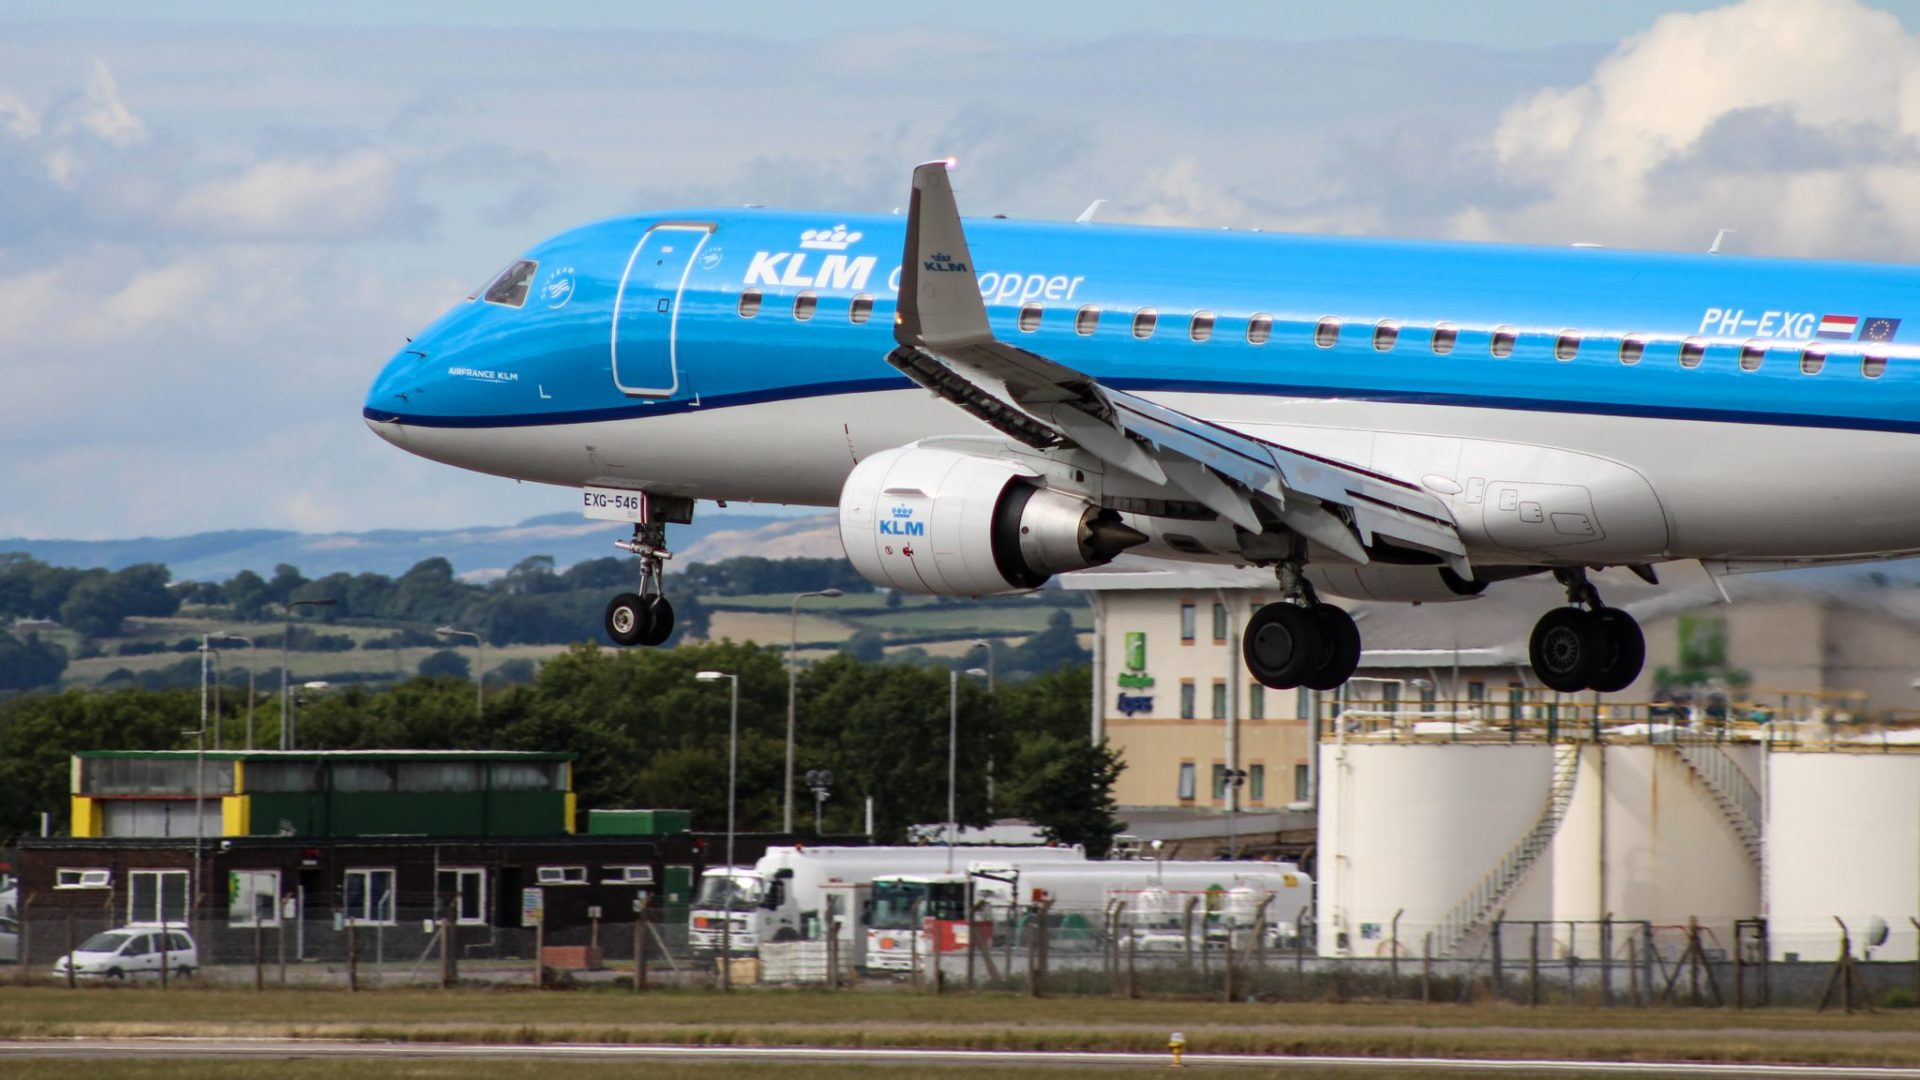 Netherlands Bans UK Flights After Finding Mutated COVID-19 | IE